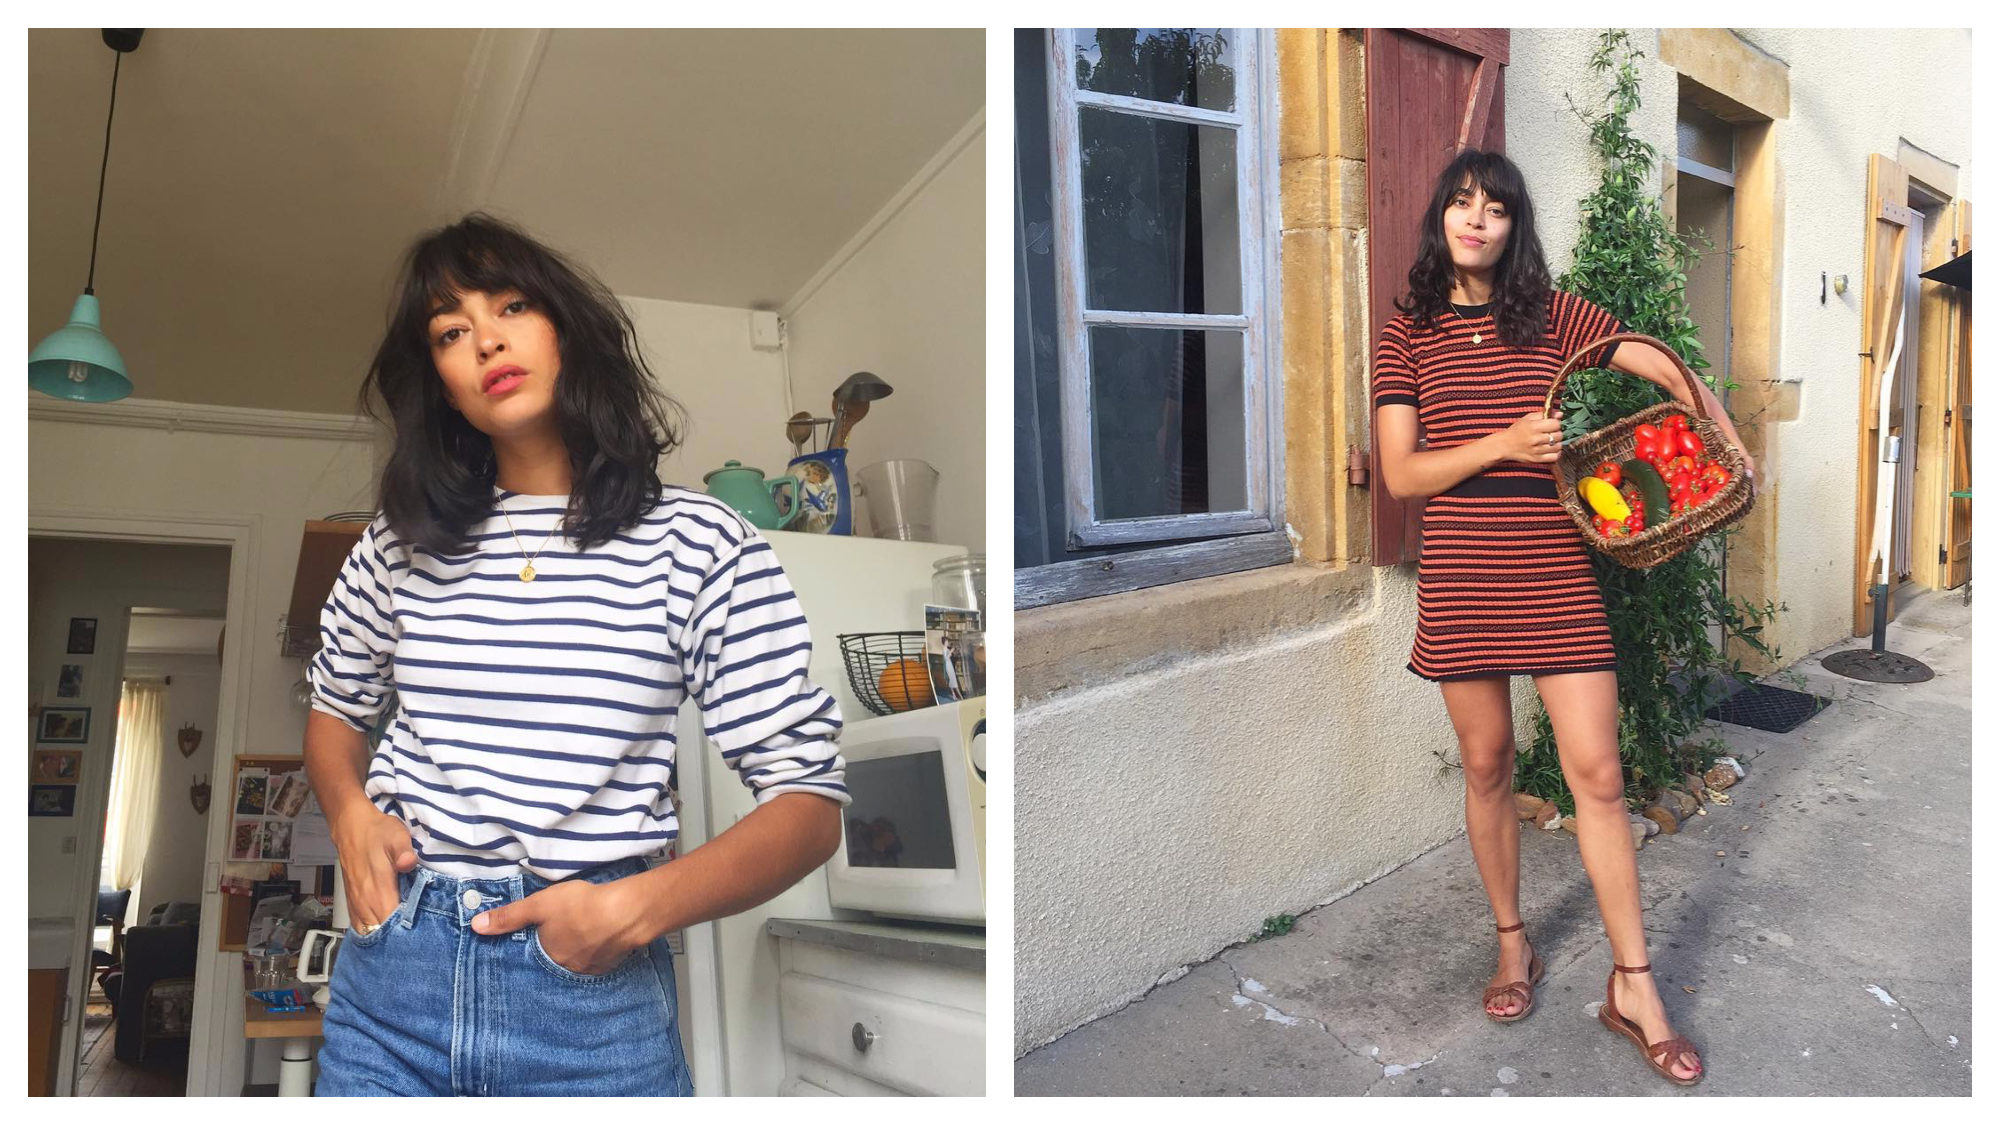 Instagram French fashion influencer Julia Jean-Baptiste, wearing a striped white and navy top with jeans (left) and seen here, wearing a striped max dress, carrying a basket of tomatoes (right).